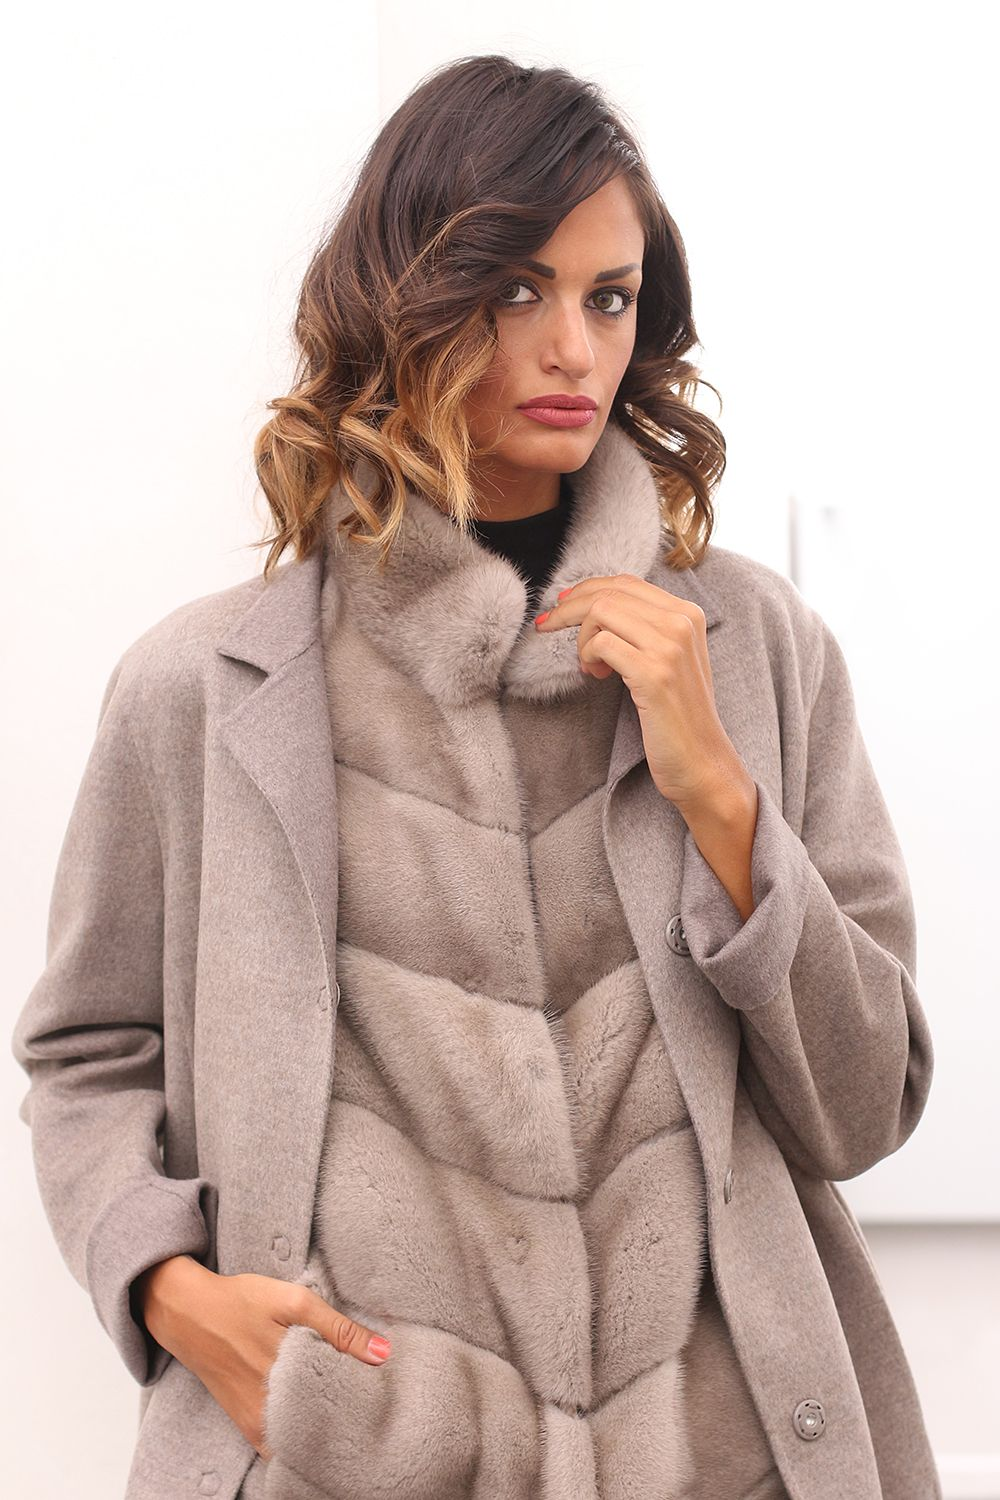 Сashmere coat with Mink. Made in Italy. Skins Quality  LORO PIANA –  KOPENHAGEN FUR PLATINUM  Color  Beige  Closure  With hooks and buttons   Collar  Round  ... 6c3f1dba89c4